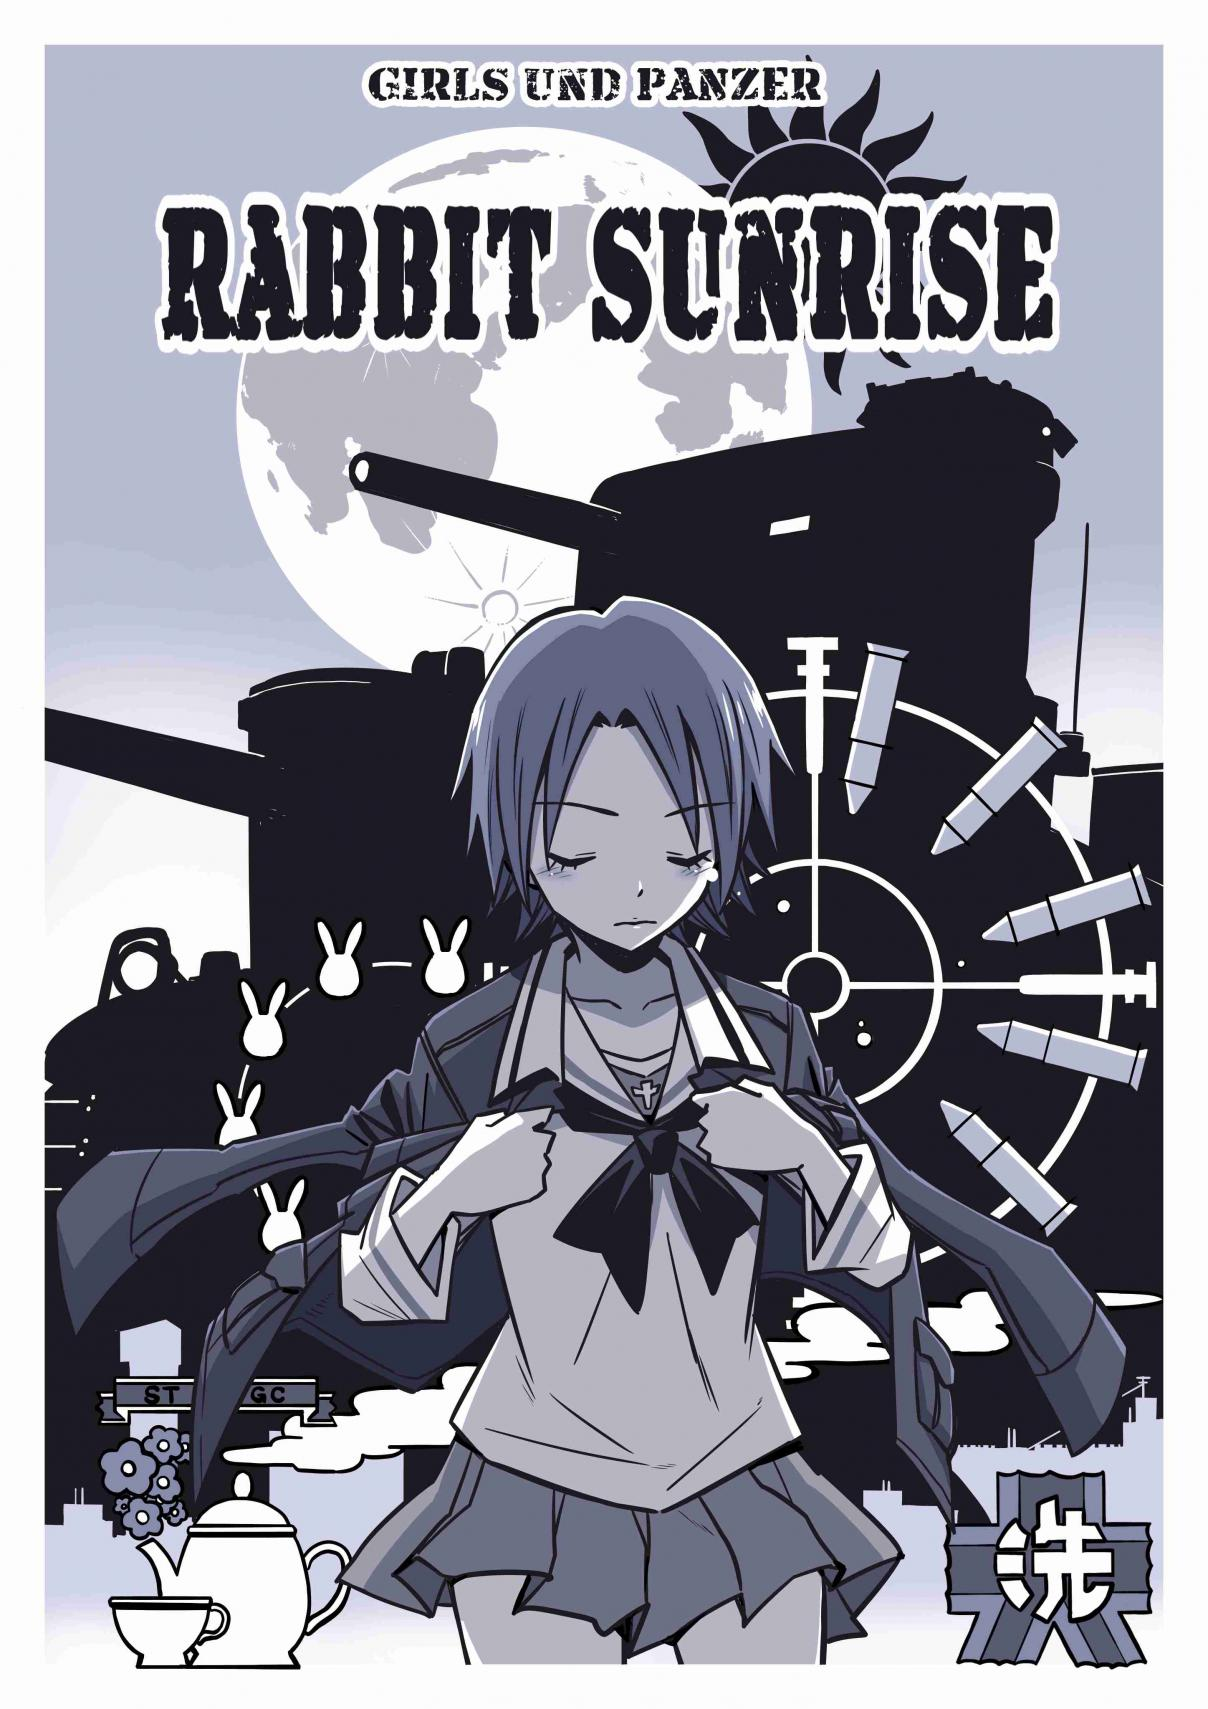 Girls Und Panzer - RABBIT SUNRISE Girls und Panzer RABBIT SUNRISE Vol. 1 Ch. 1